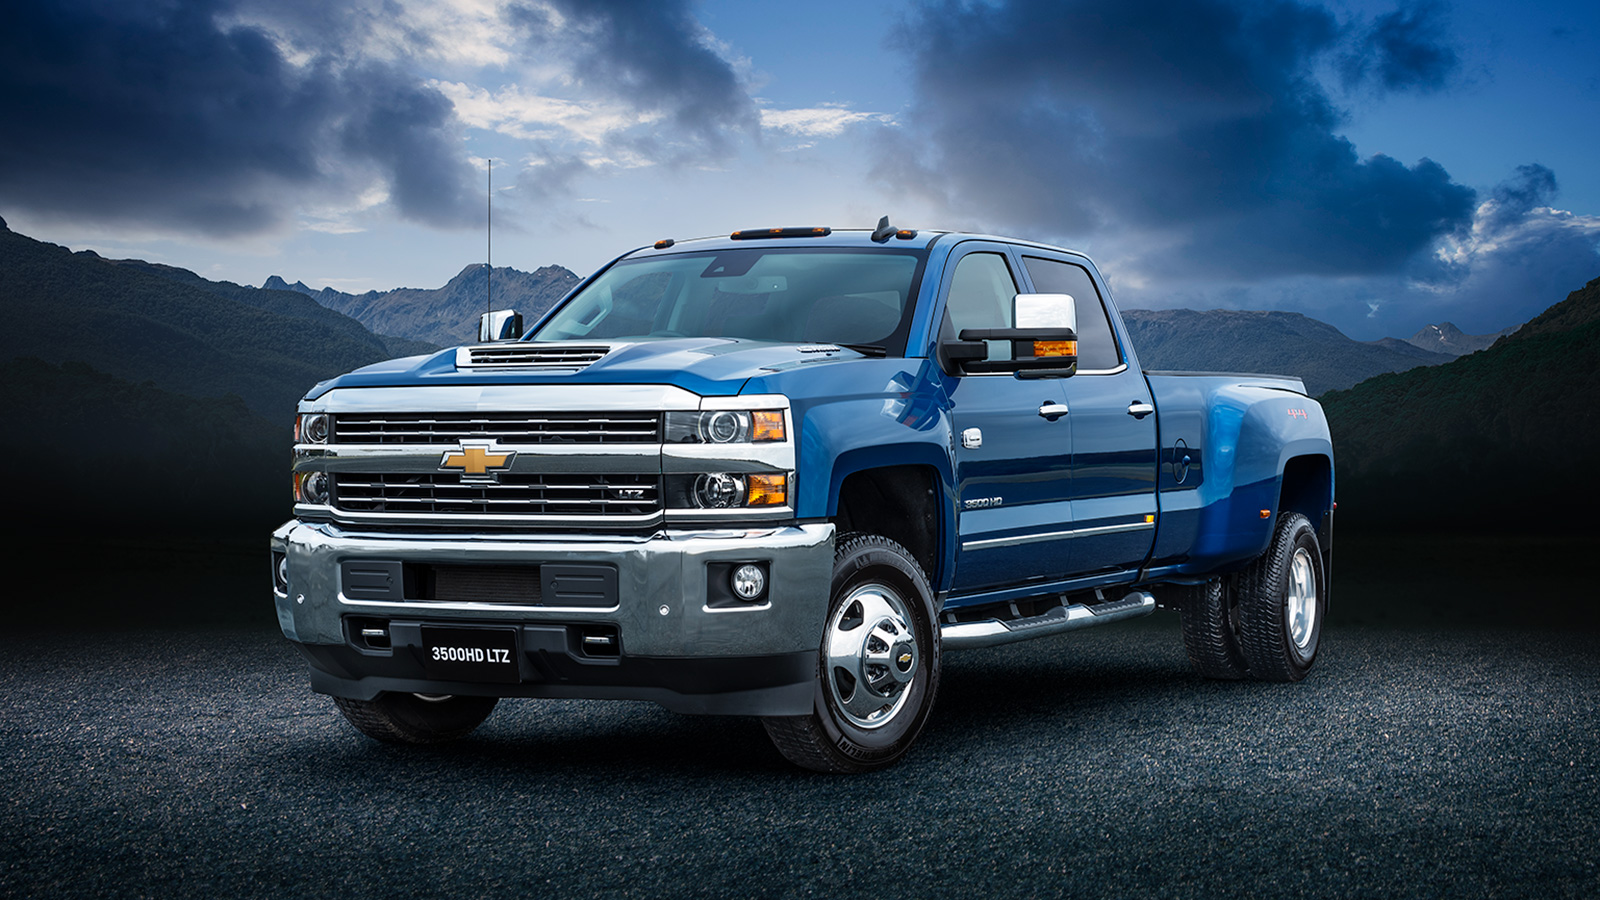 HSV Confirms Chevrolet Silverado 3500HD LTZ Specifications